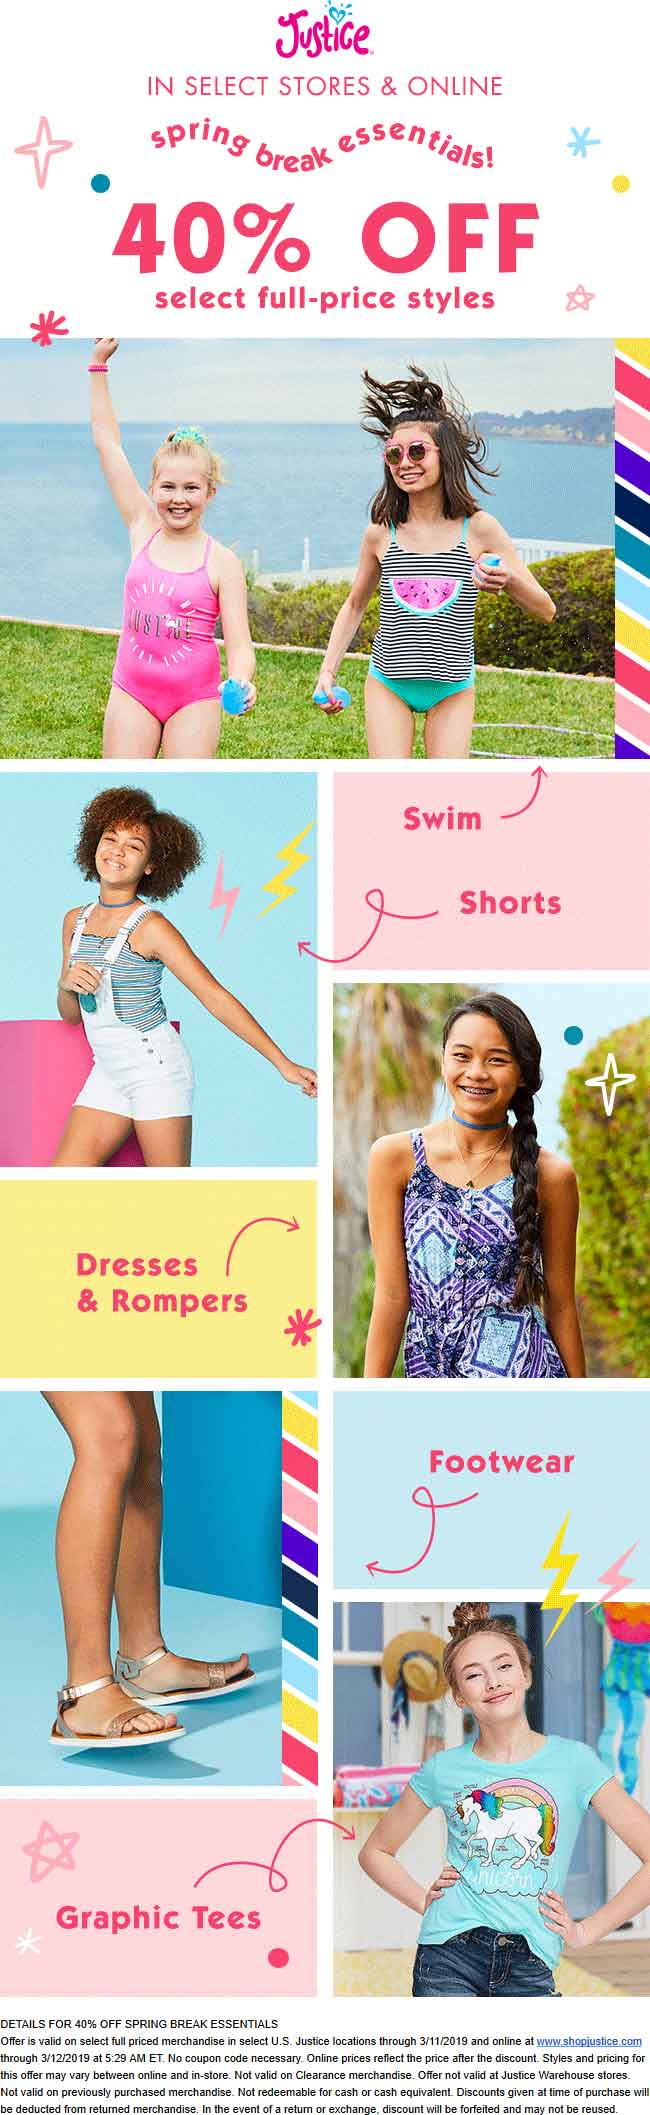 Justice Coupon April 2019 40% off spring break essentials today at Justice, ditto online